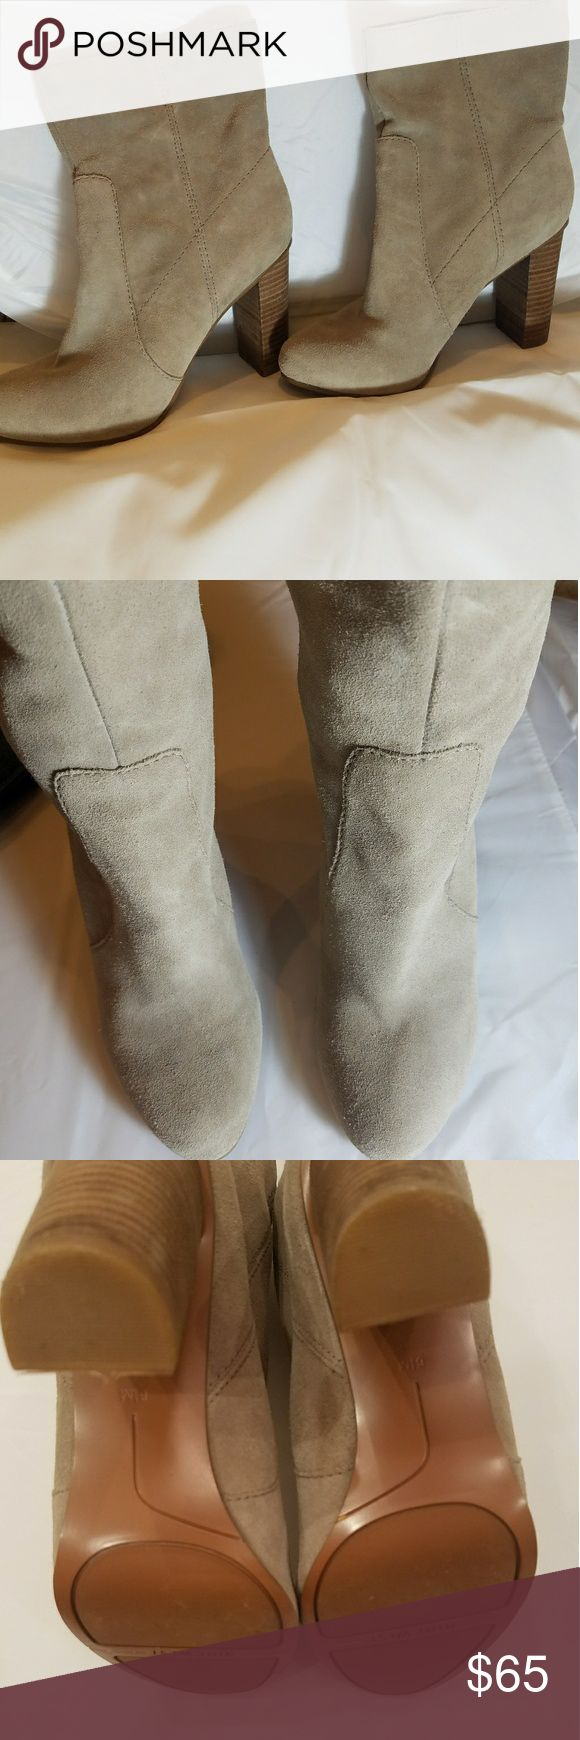 "Nine West Suede Boots Ready for Fall in these Nine West stylish and versatile boots! Wear with your favorite jeans or dress them up with tights and a mini skirt! Genuine leather upper and designer style topstiched.  Approx. 3.5"" heels and 9"" total in shaft height (includes heel).  Seldom worn and in great condition. Nine West Shoes Heeled Boots"